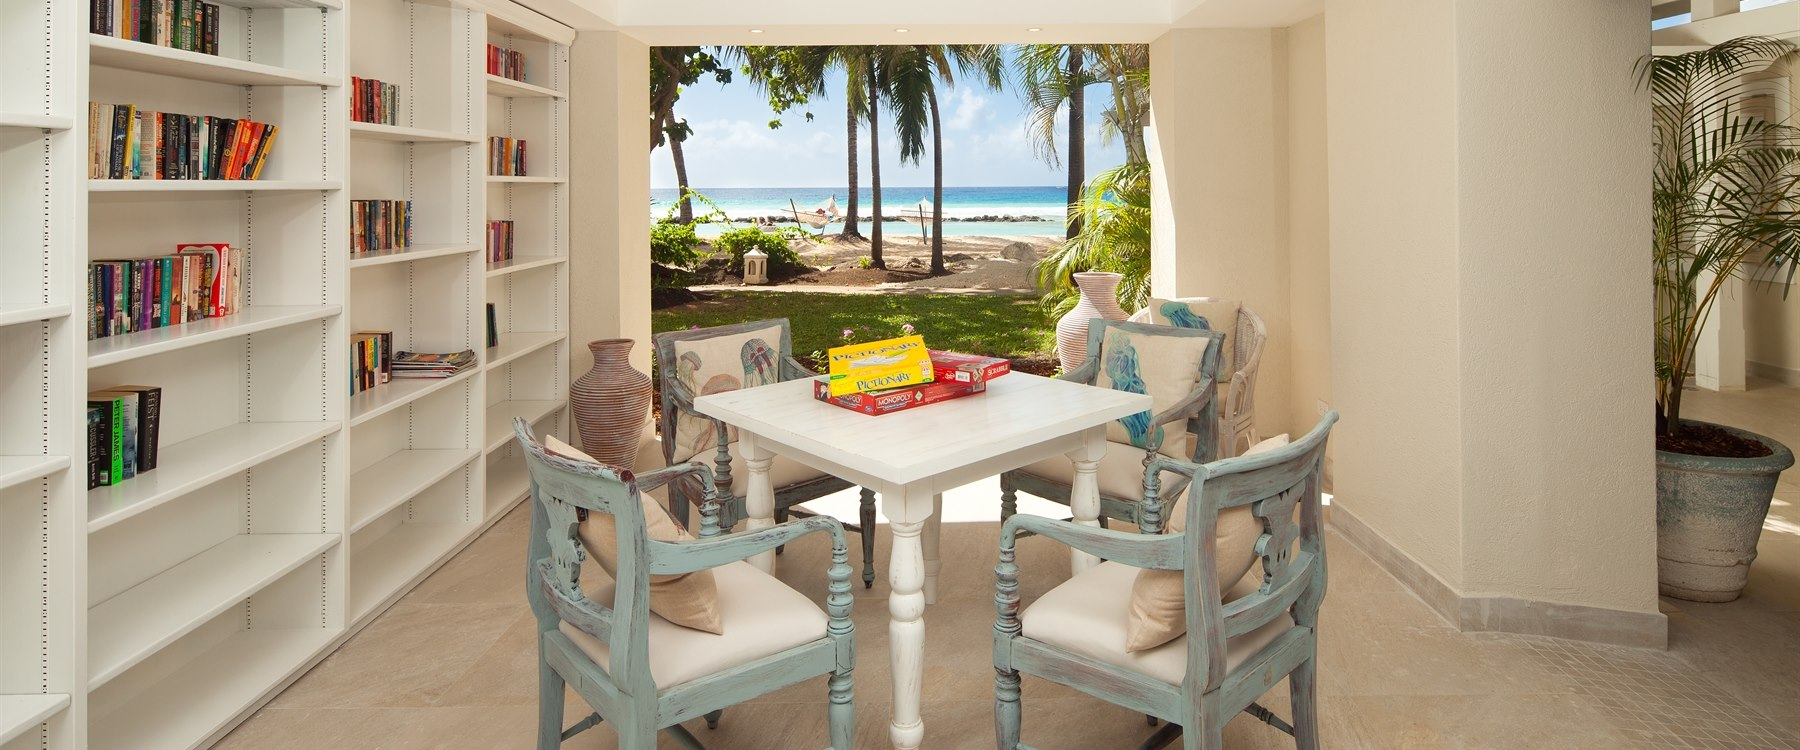 games room at sugar bay, barbados